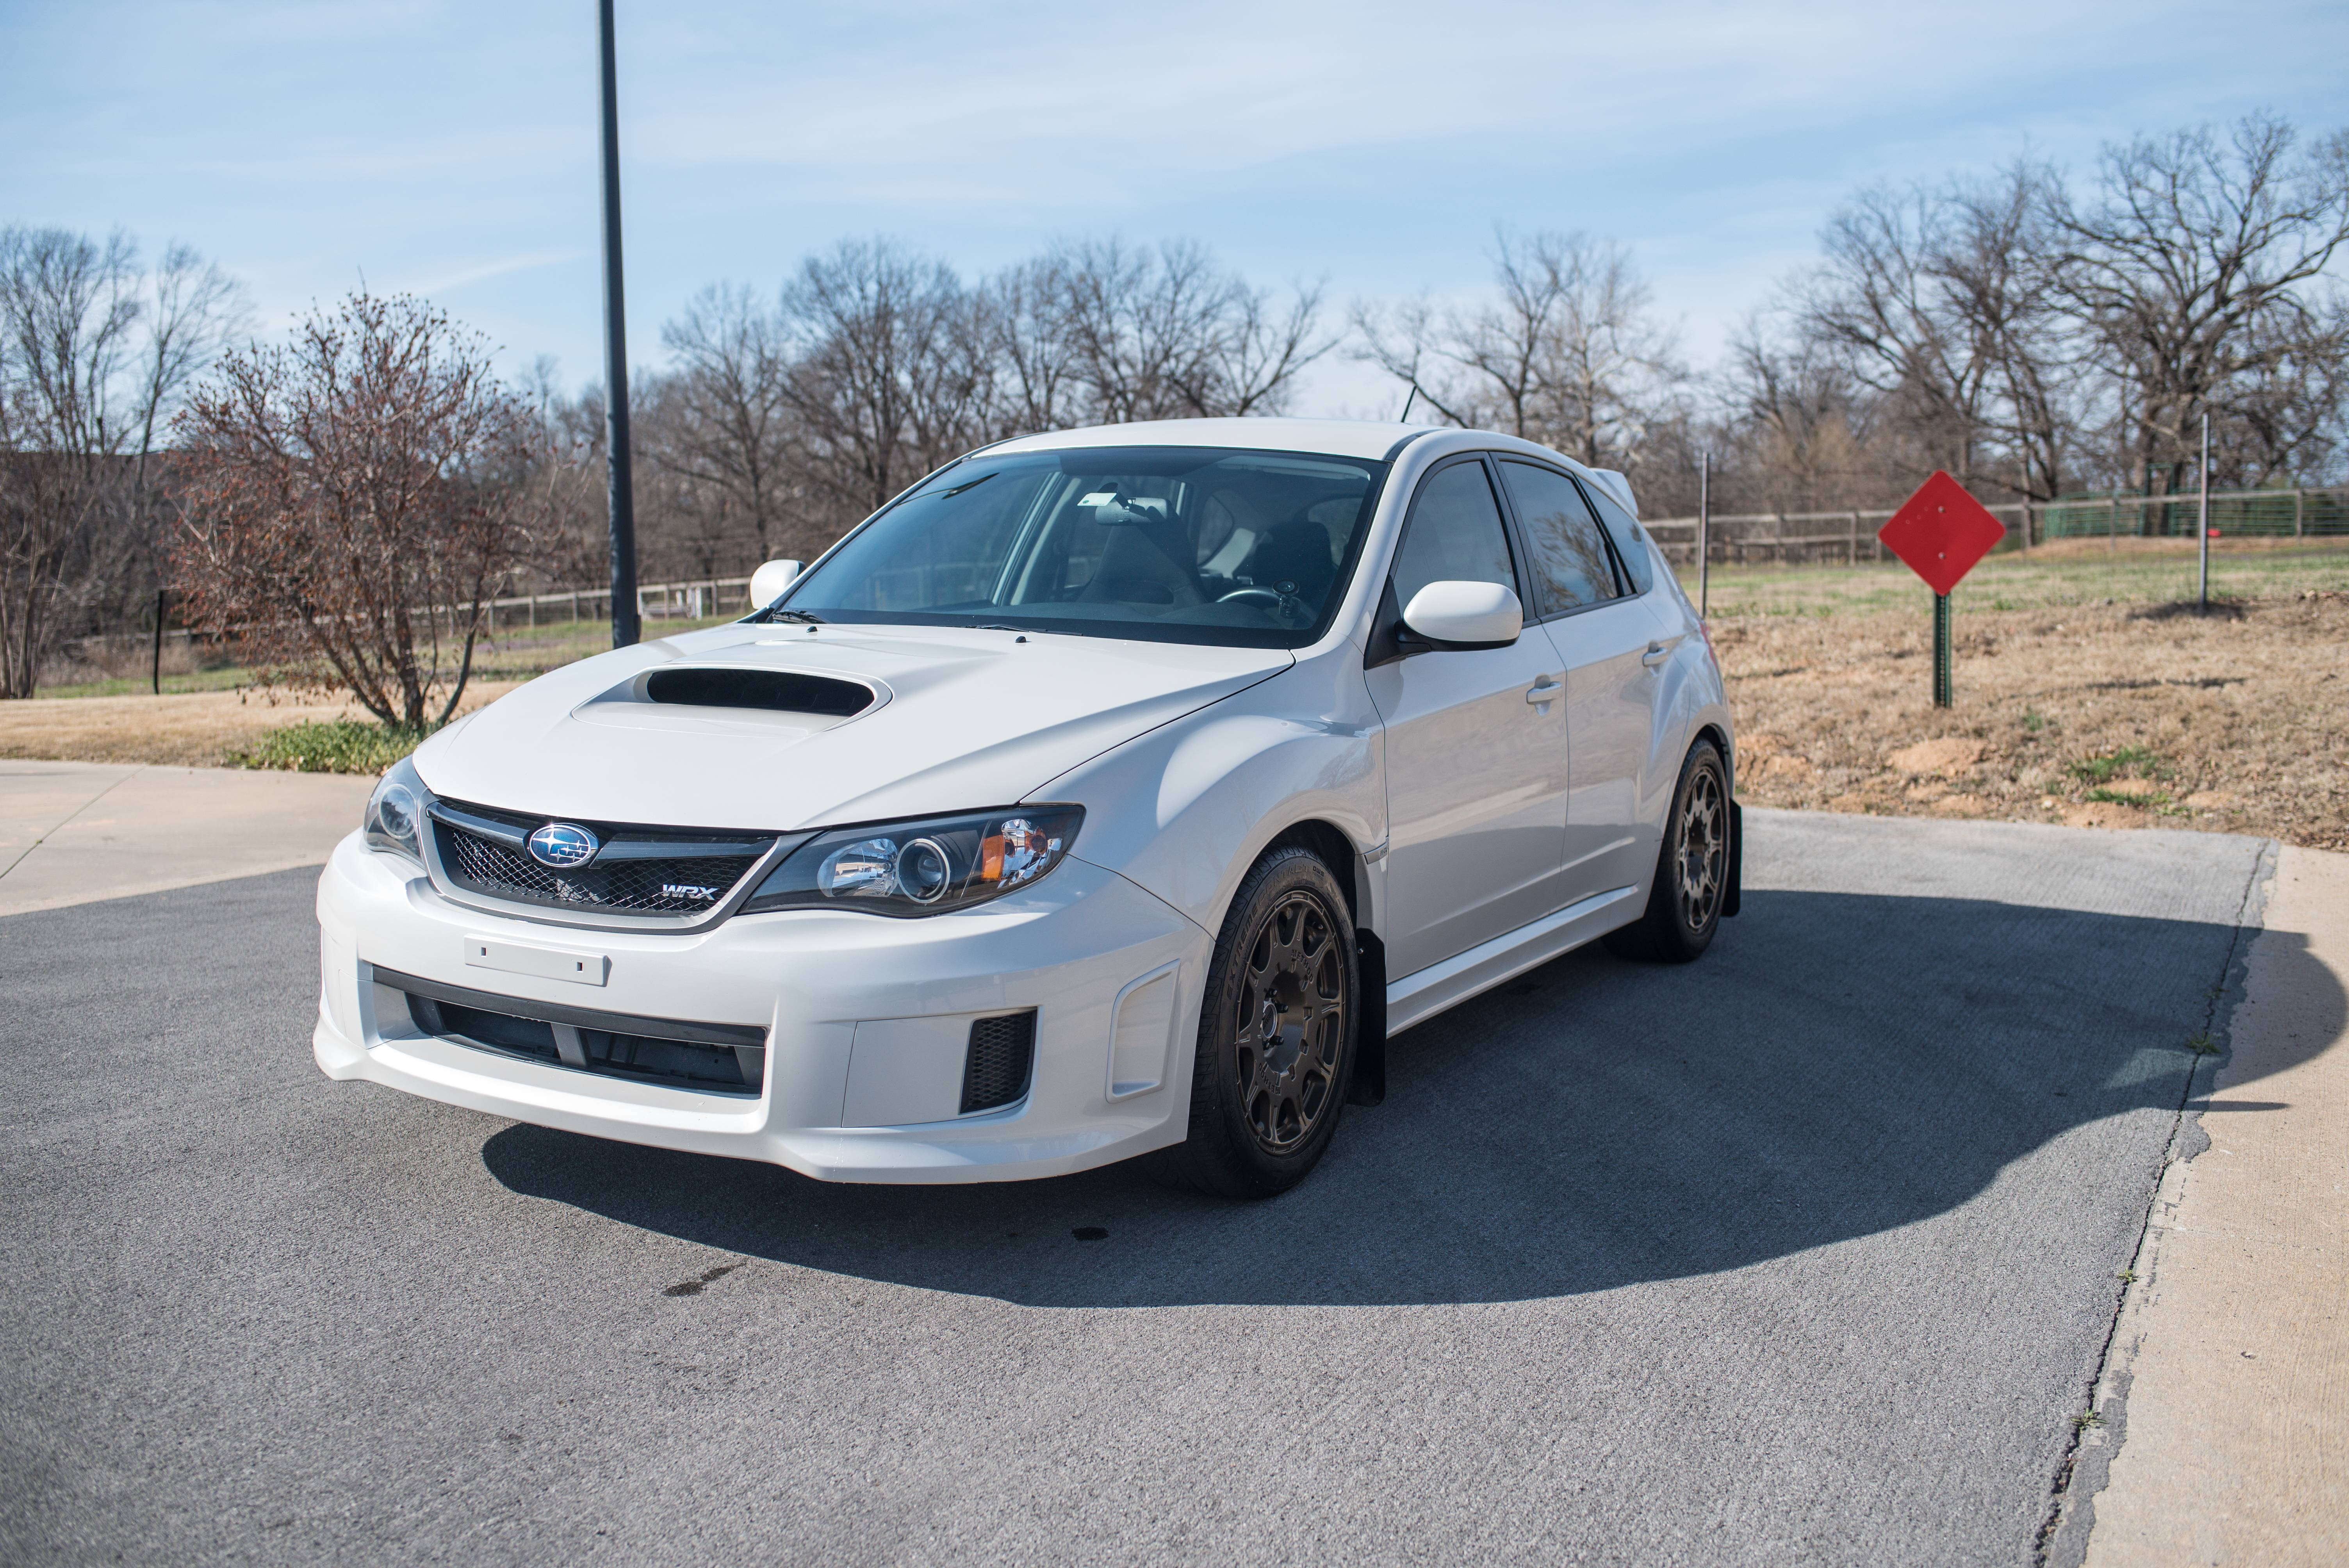 2014 subaru wrx hatchback white for sale old ads classifieds oklahoma shooters. Black Bedroom Furniture Sets. Home Design Ideas